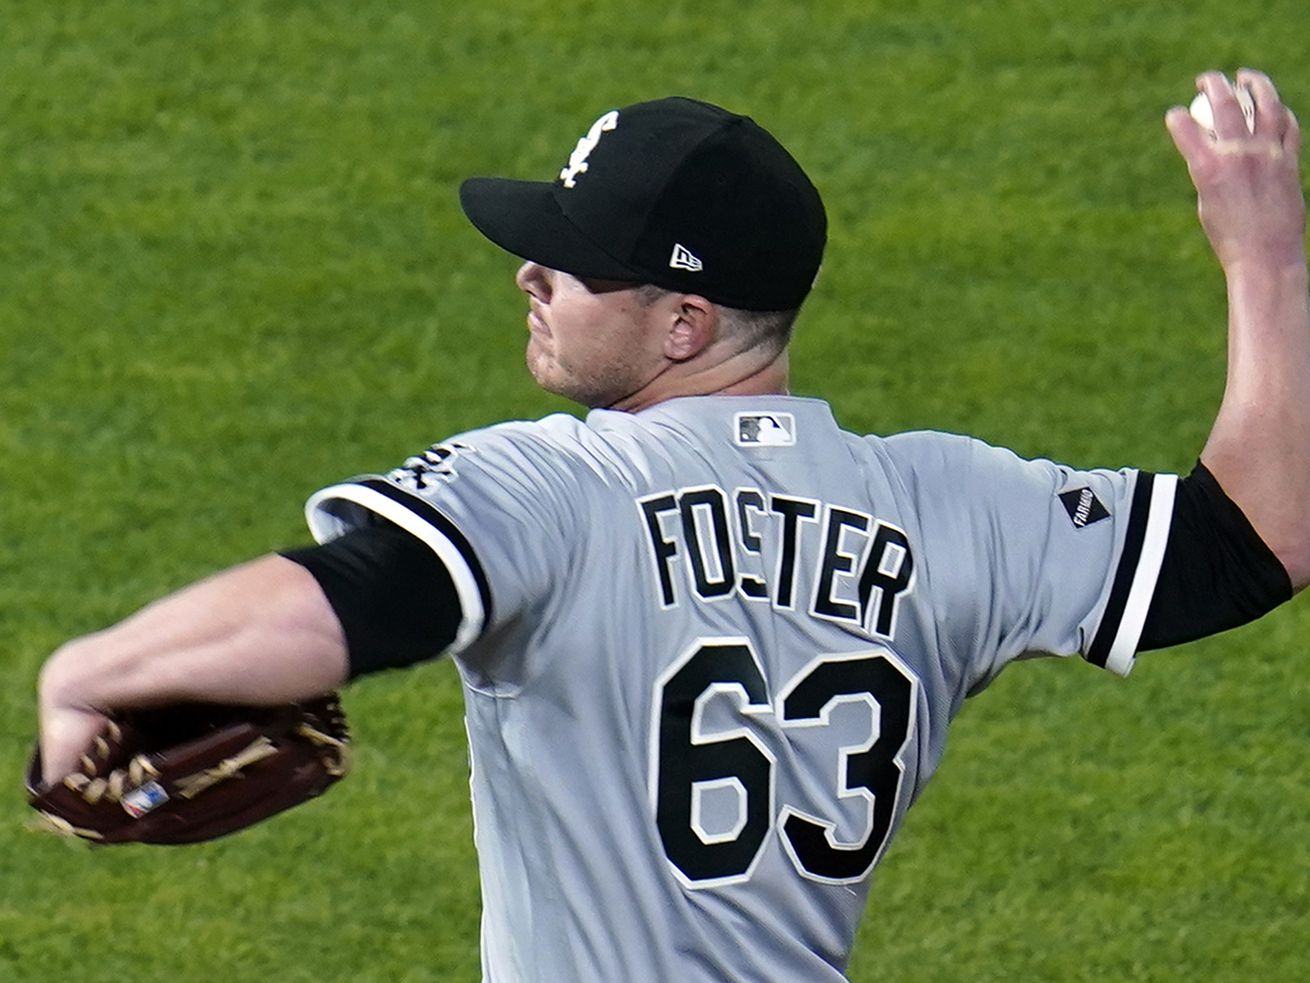 White Sox look to bullpen in Game 3 after dropping Game 2 to Athletics